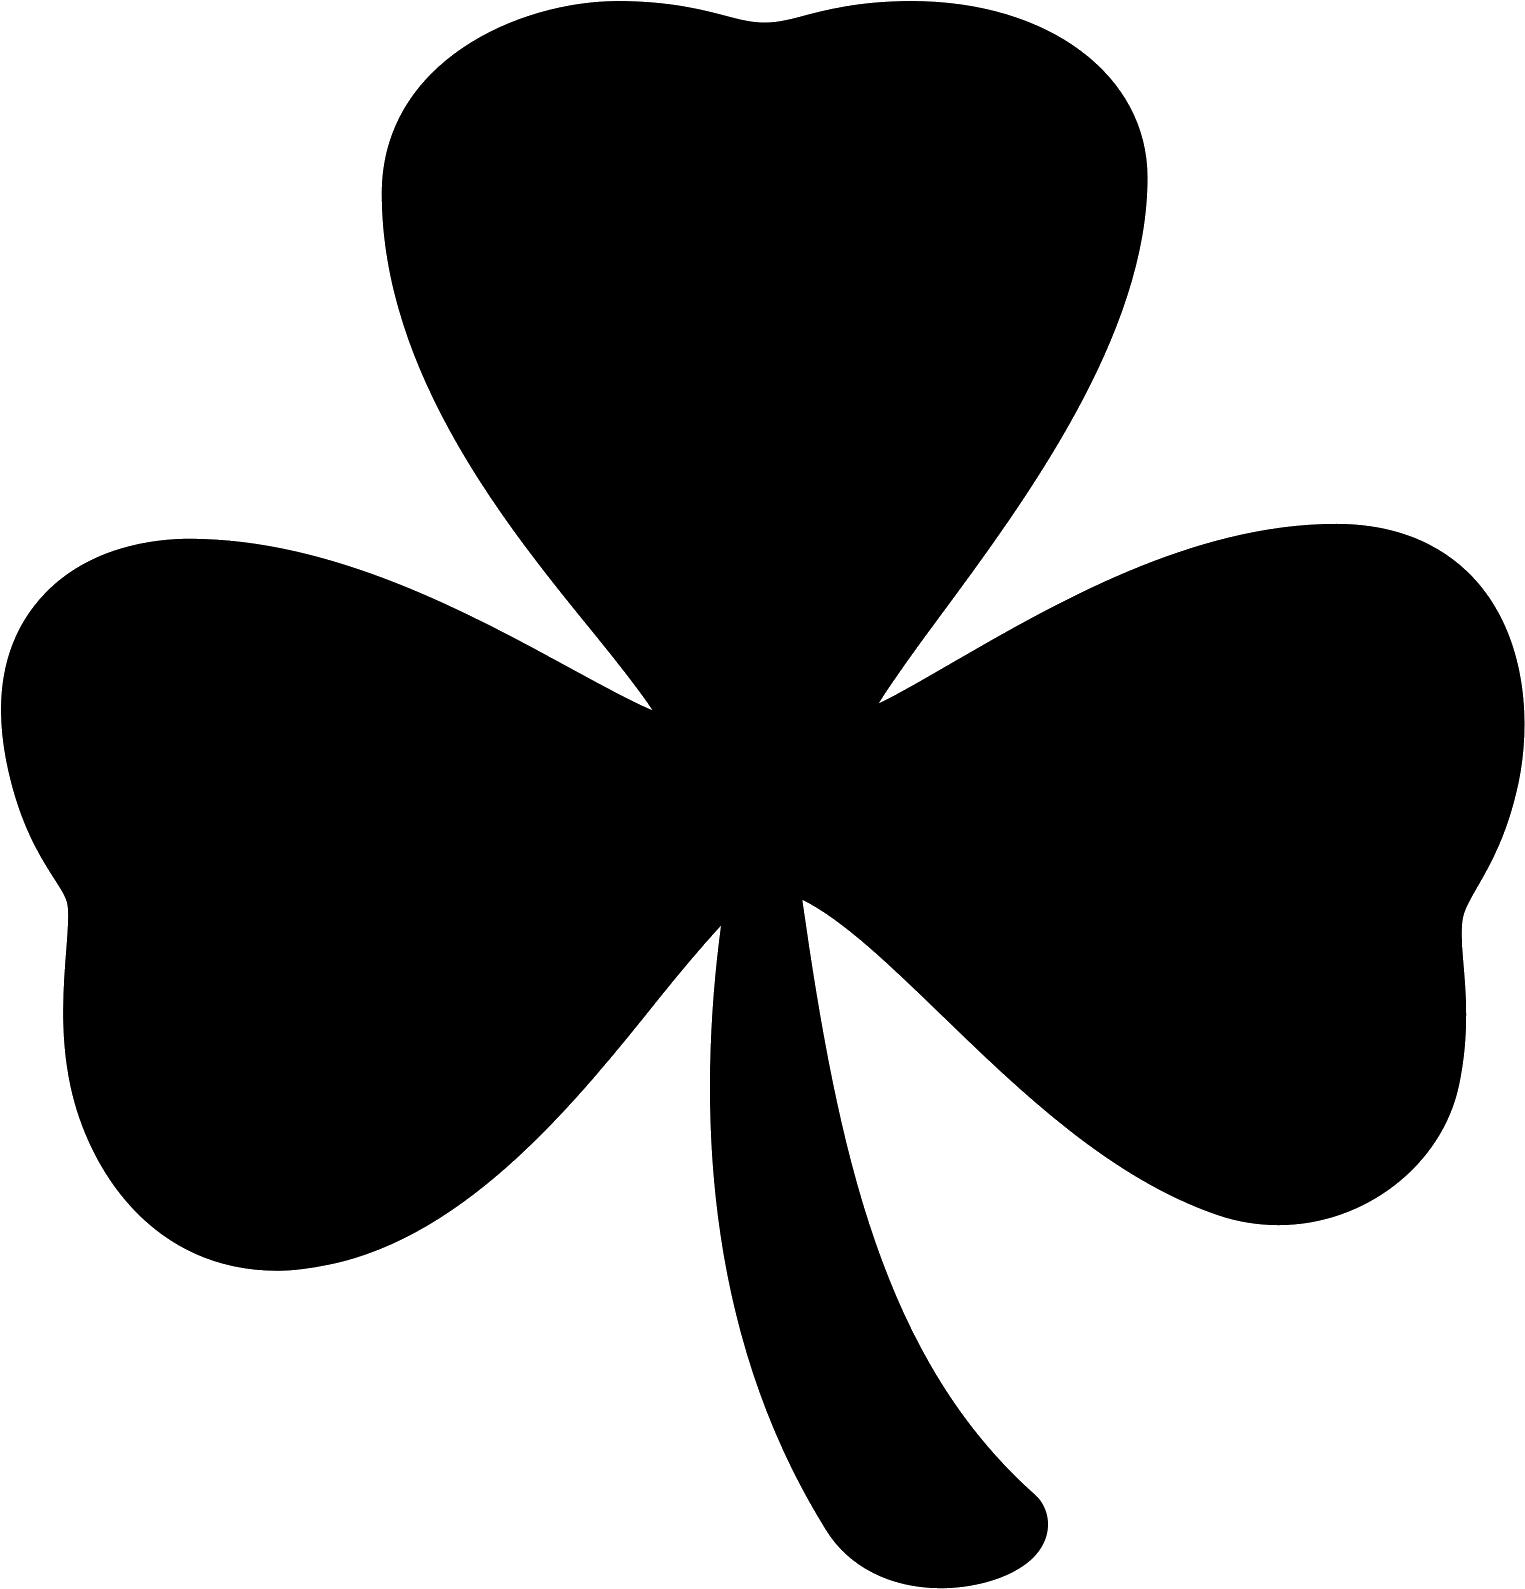 Four Leaf Clover Clipart For Free Download Four Leaf Clover